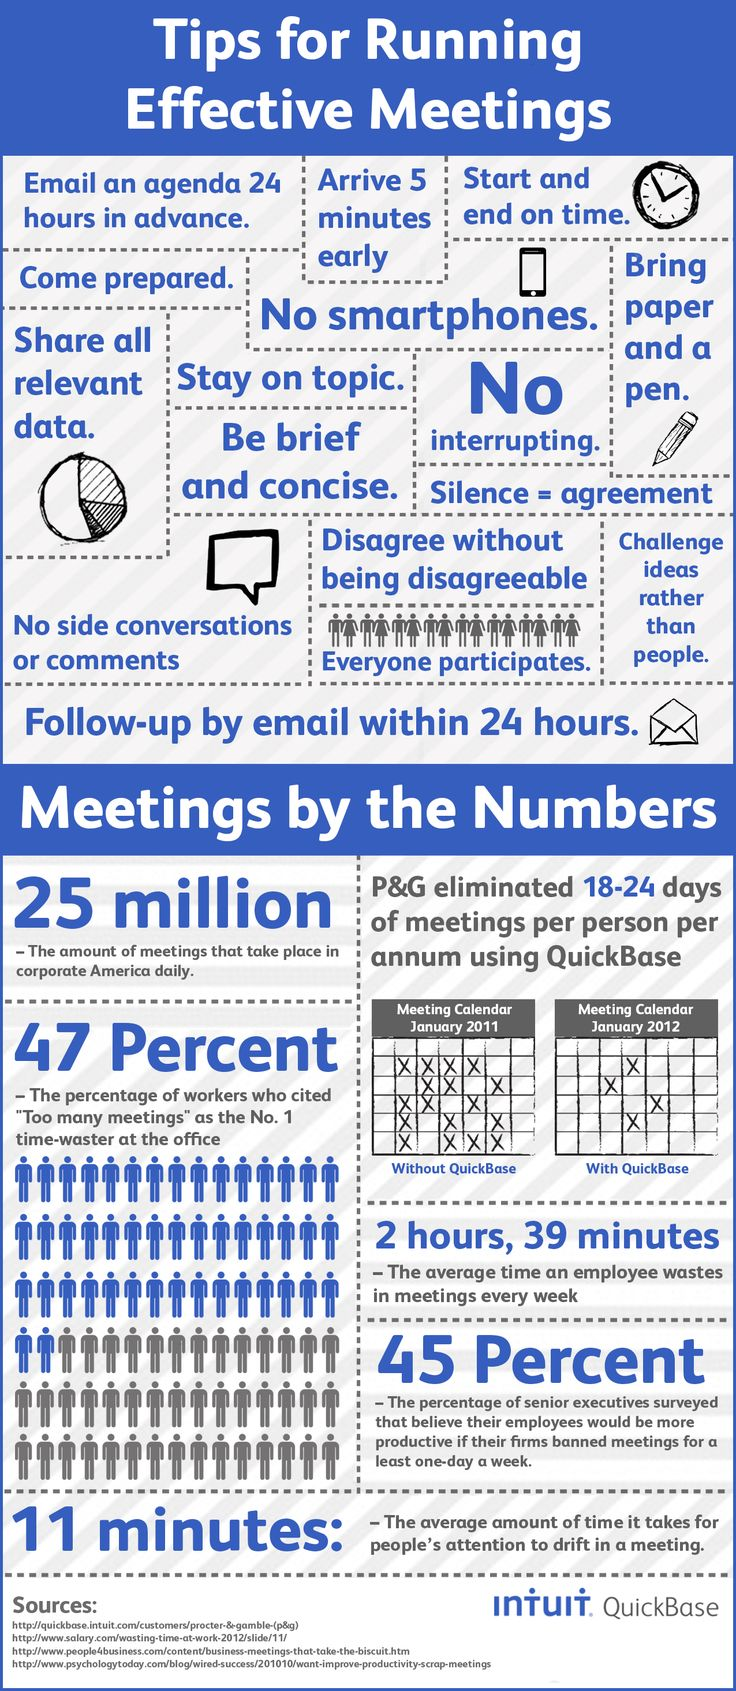 Meetings are typically not something I look forward to. In fact, I do whatever I can to avoid them. But sometimes you just have to face the music and have one. So what could I do to make these meetings as effective as possible? What are some handy tips th